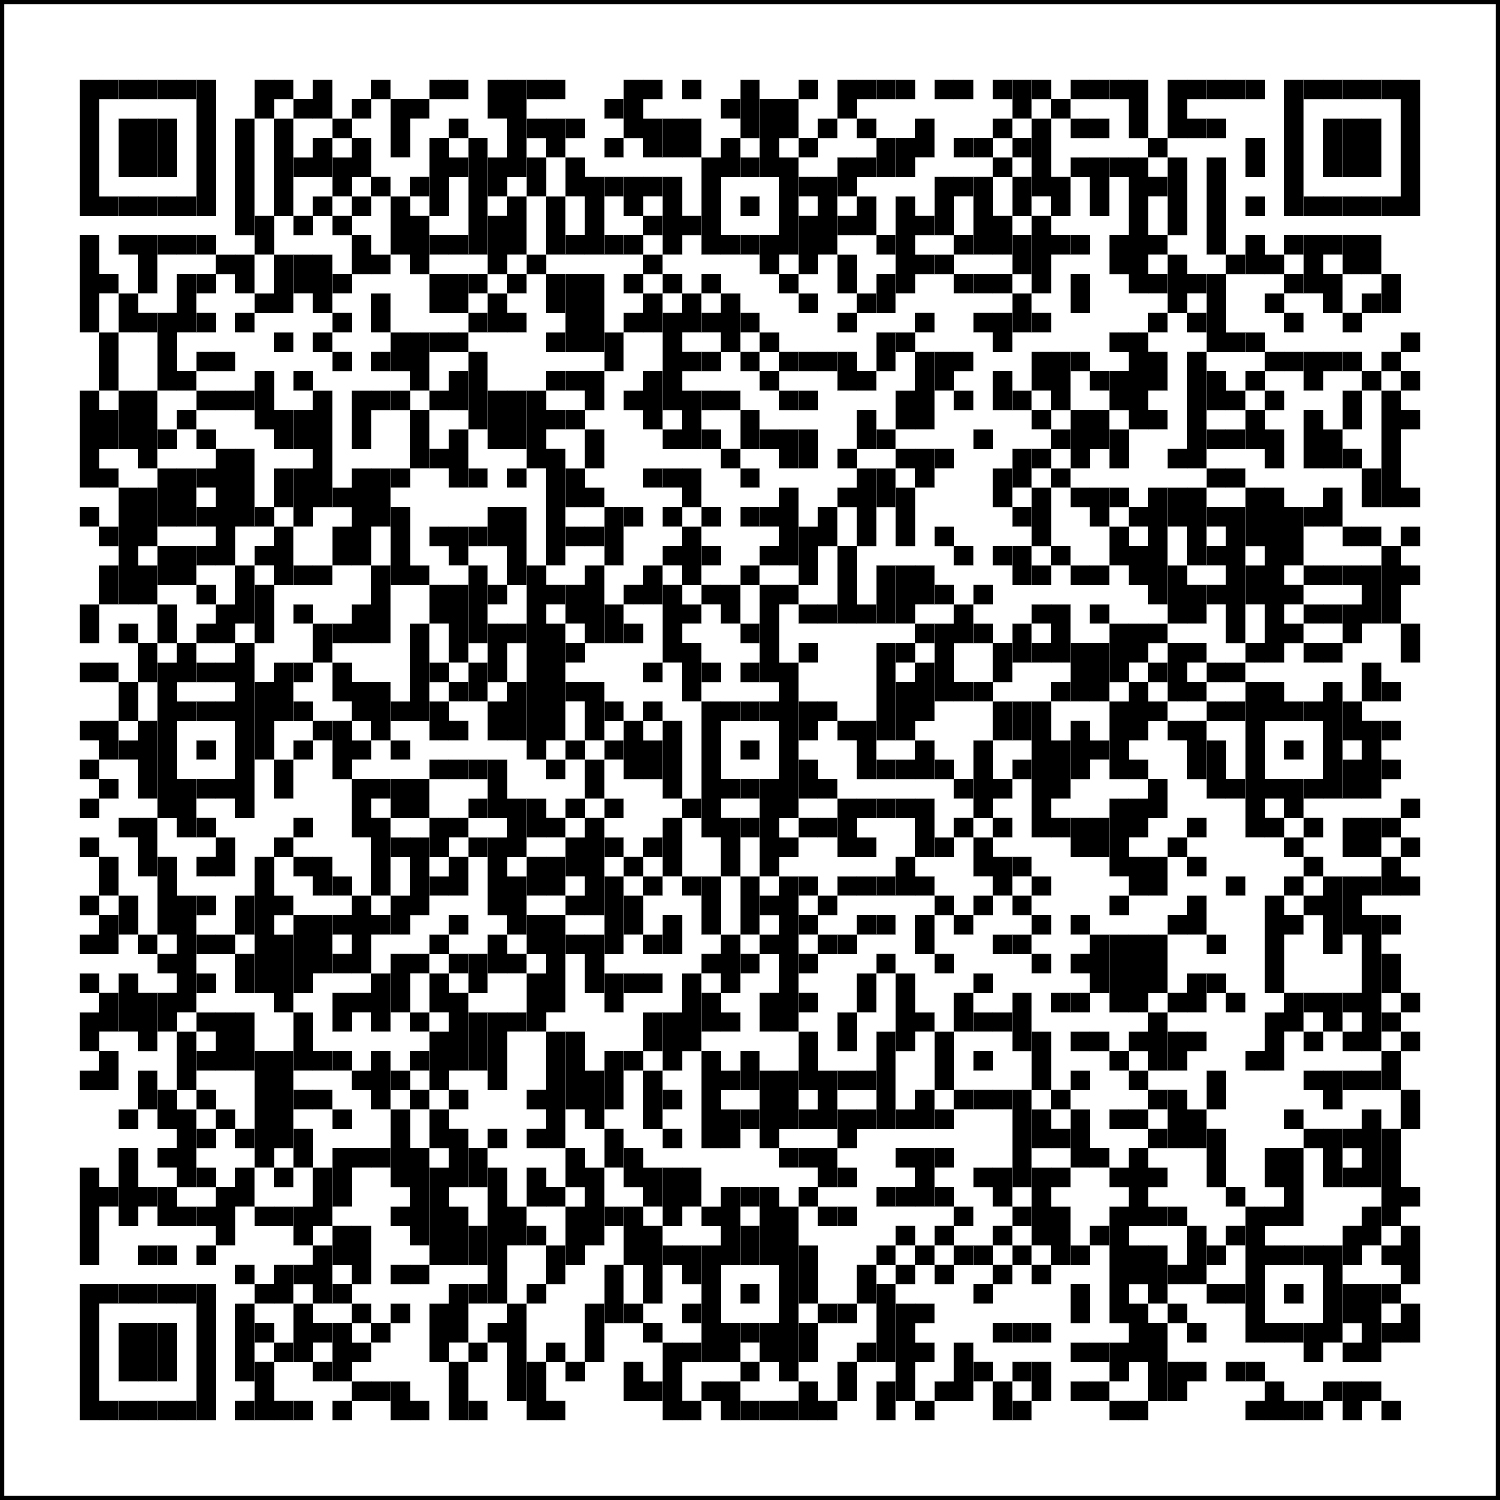 QR code for CU System guests